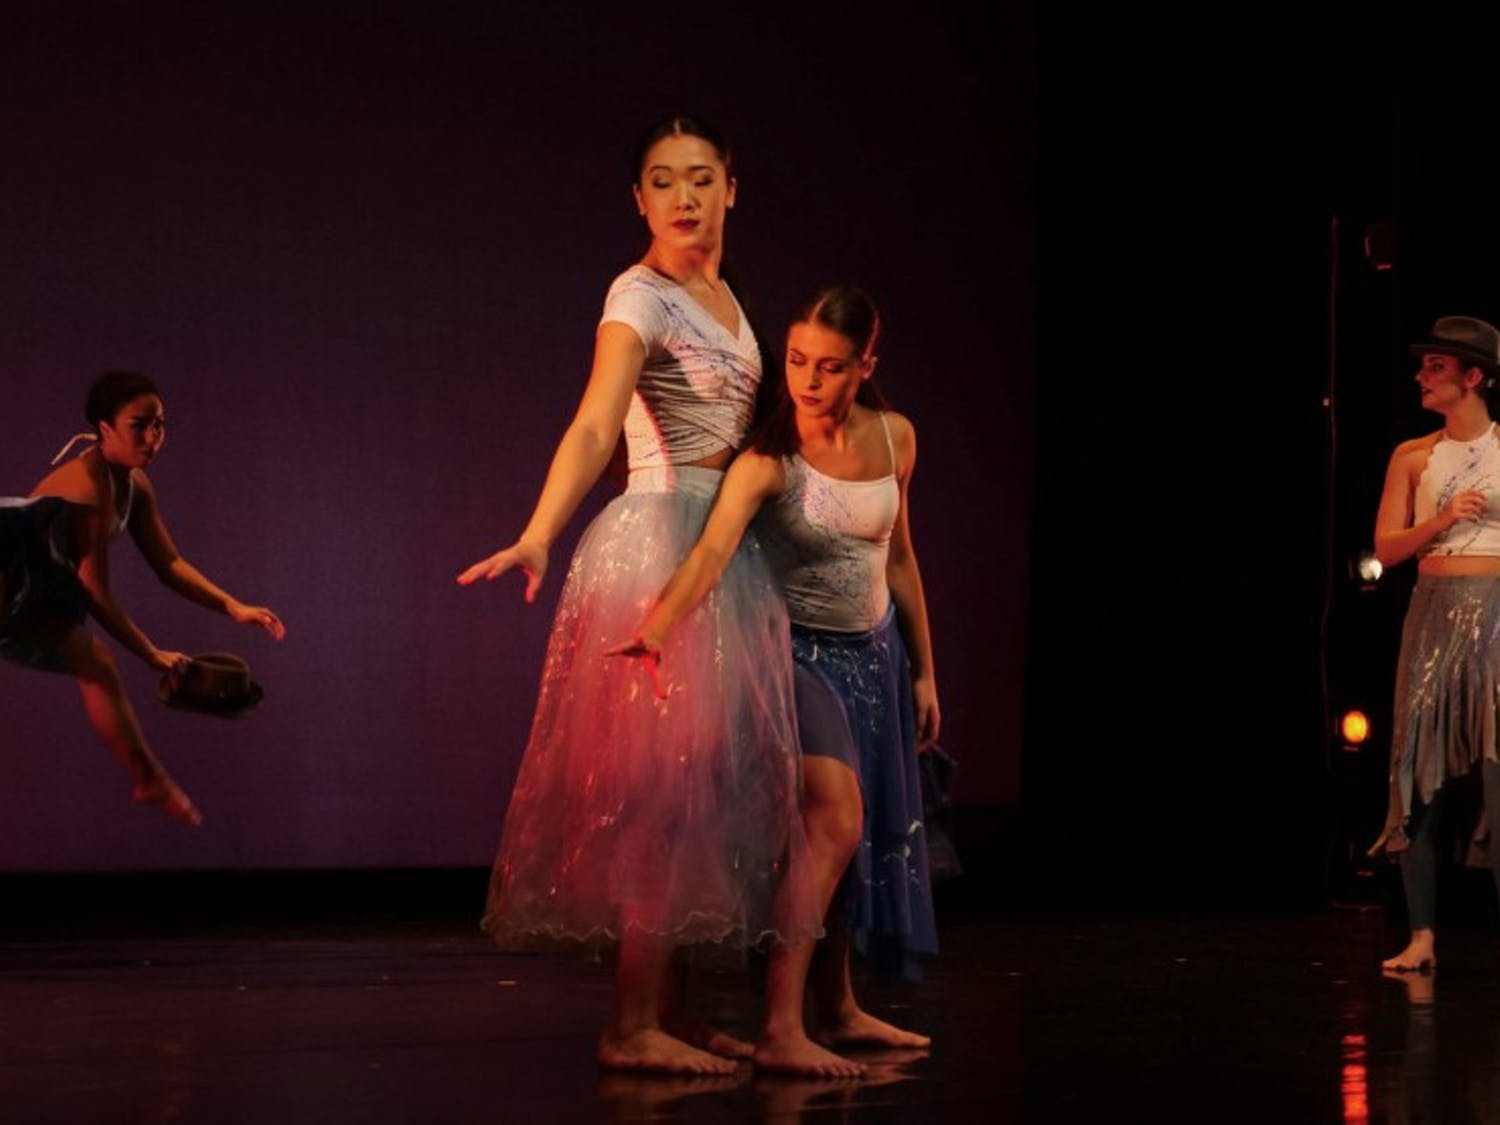 """Following """"Celebration 45,"""" the Zodiaque Dance Company is gearing up for its spring showing with """"Zodiaque Dances On."""" Director Kerry Ring says she's proud of the hard work her dancers have put in and thinks this spring's show has something for everyone."""